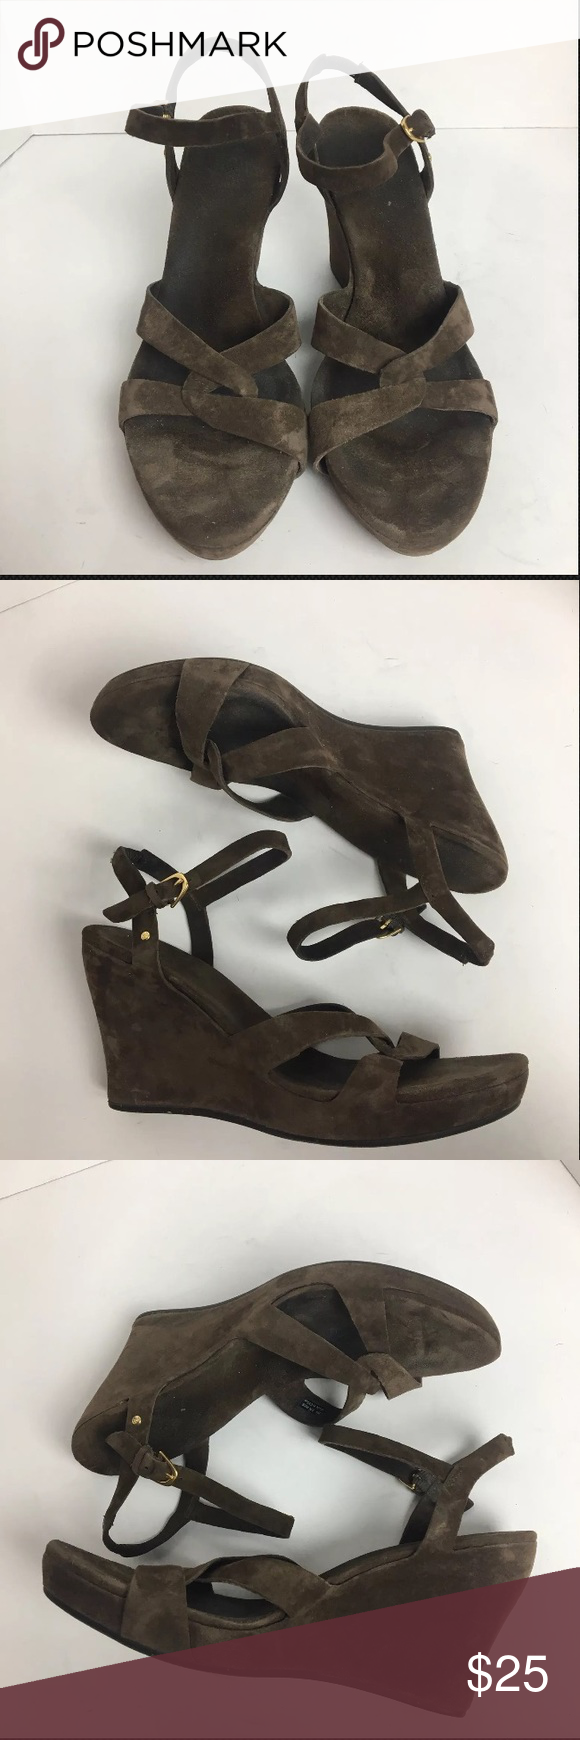 1cfb6fa4787 UGG Arianna brown suede platform wedge sandals Great condition A ...